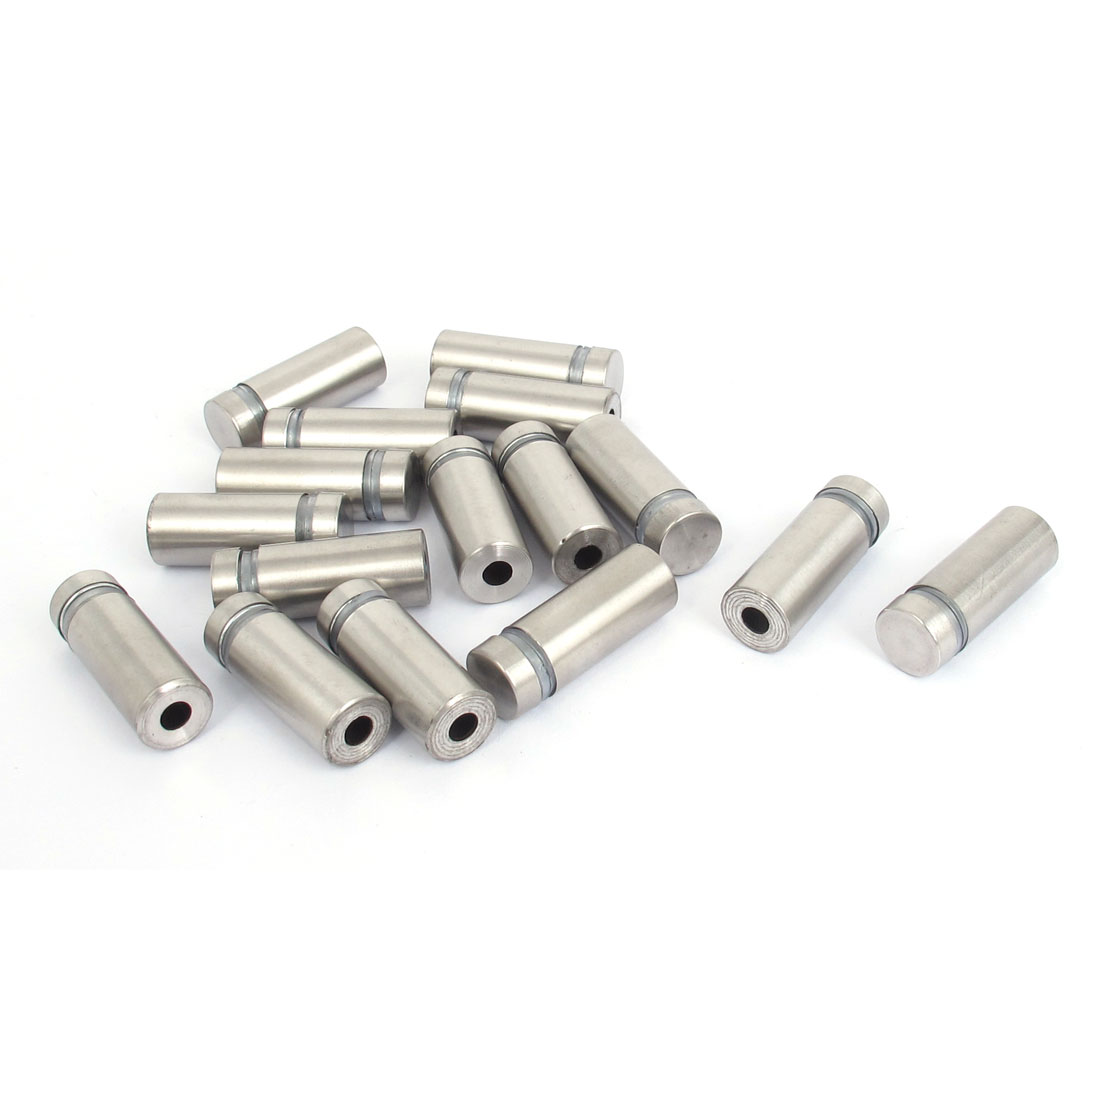 12mm x 30mm Stainless Steel Advertising Frameless Glass Standoff Pins 16pcs